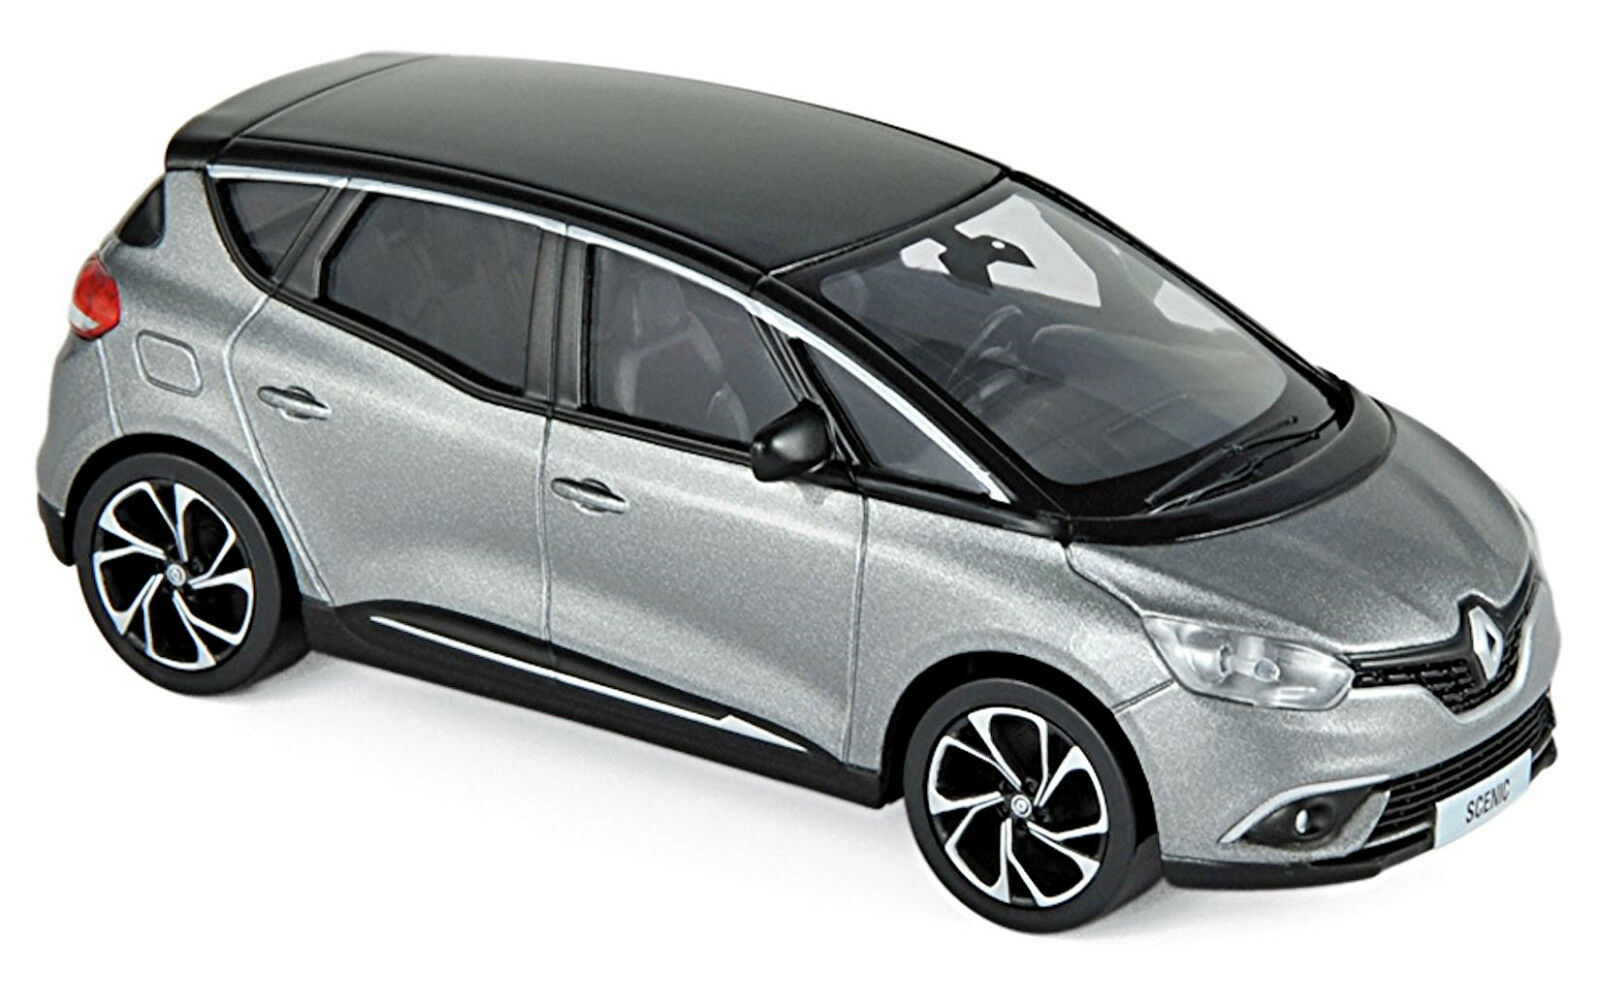 Generation 2016-18 Cassiopee Grey /& Black 1:43 Norev Renault Scenic 4